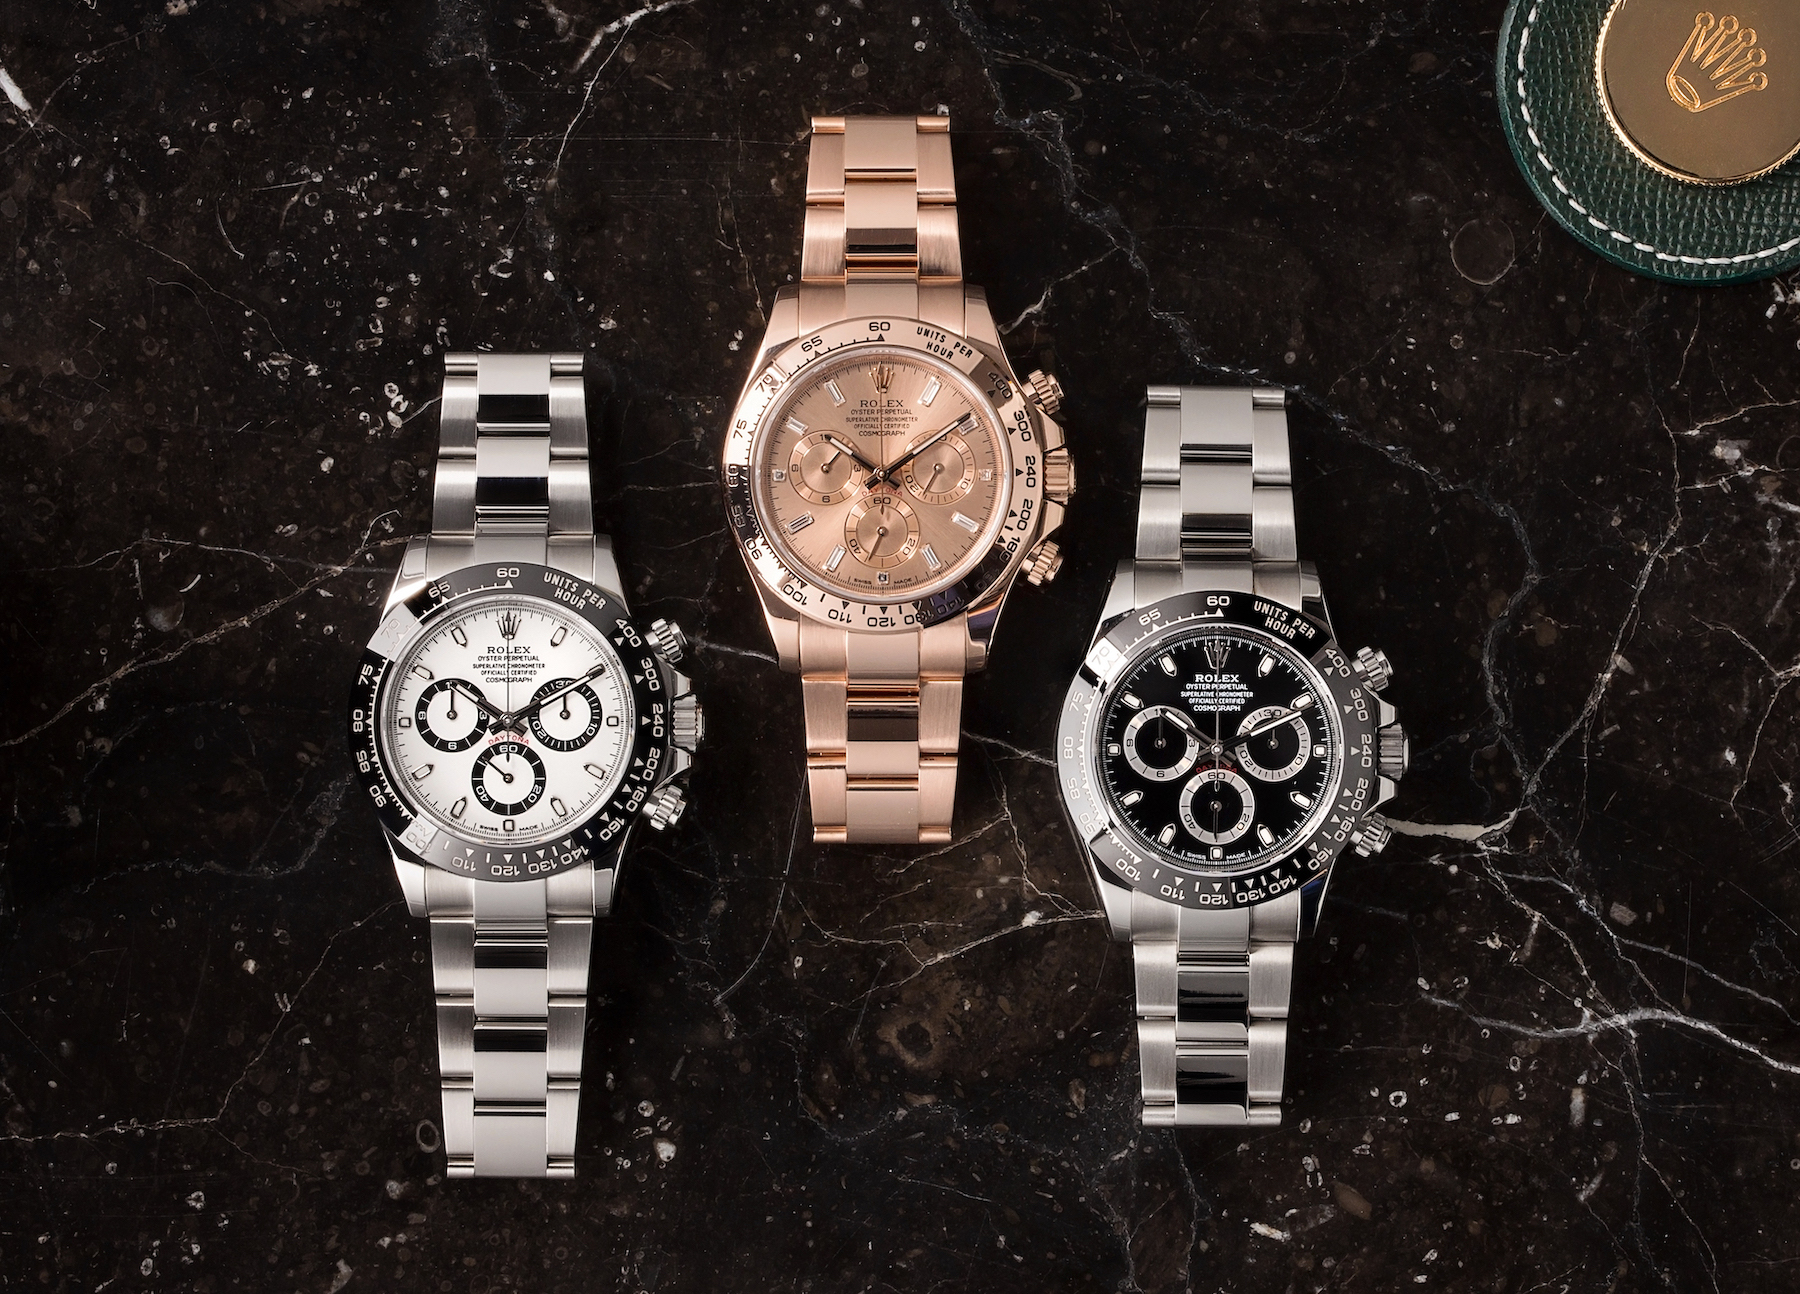 Here's How to Sell Your Rolex - Without Losing Money